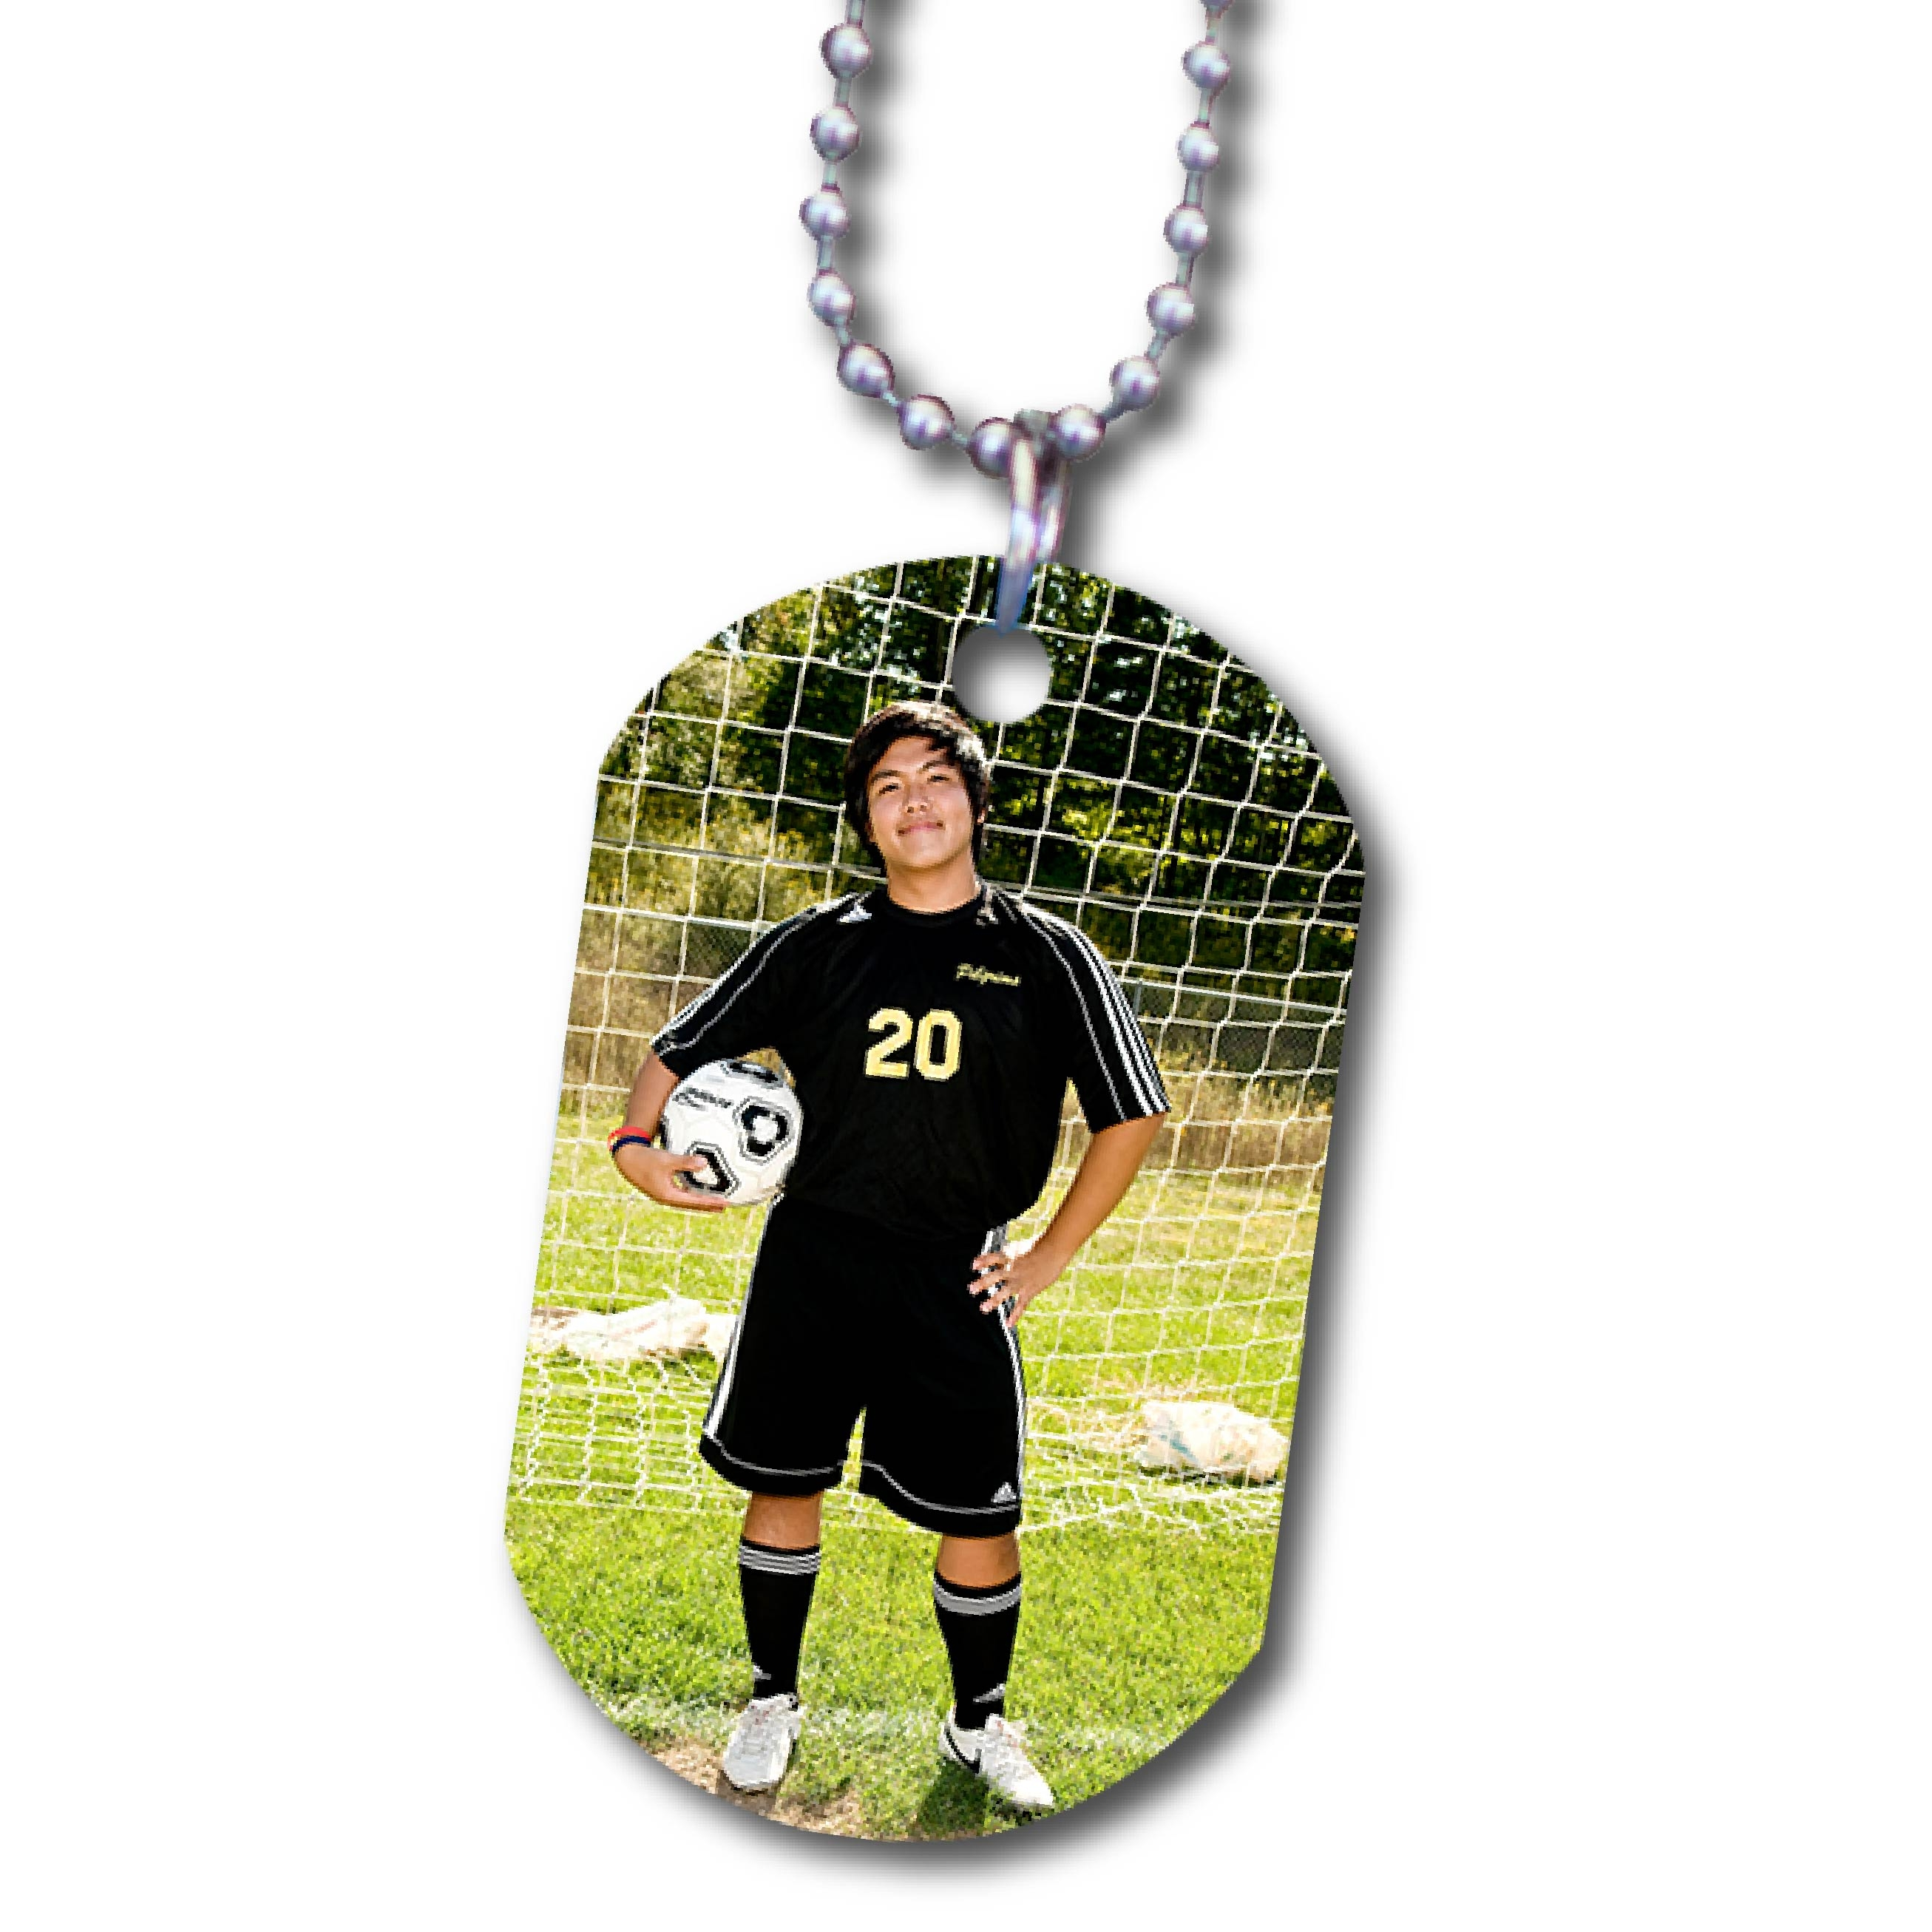 Soccer Player Printed on Dog Tag